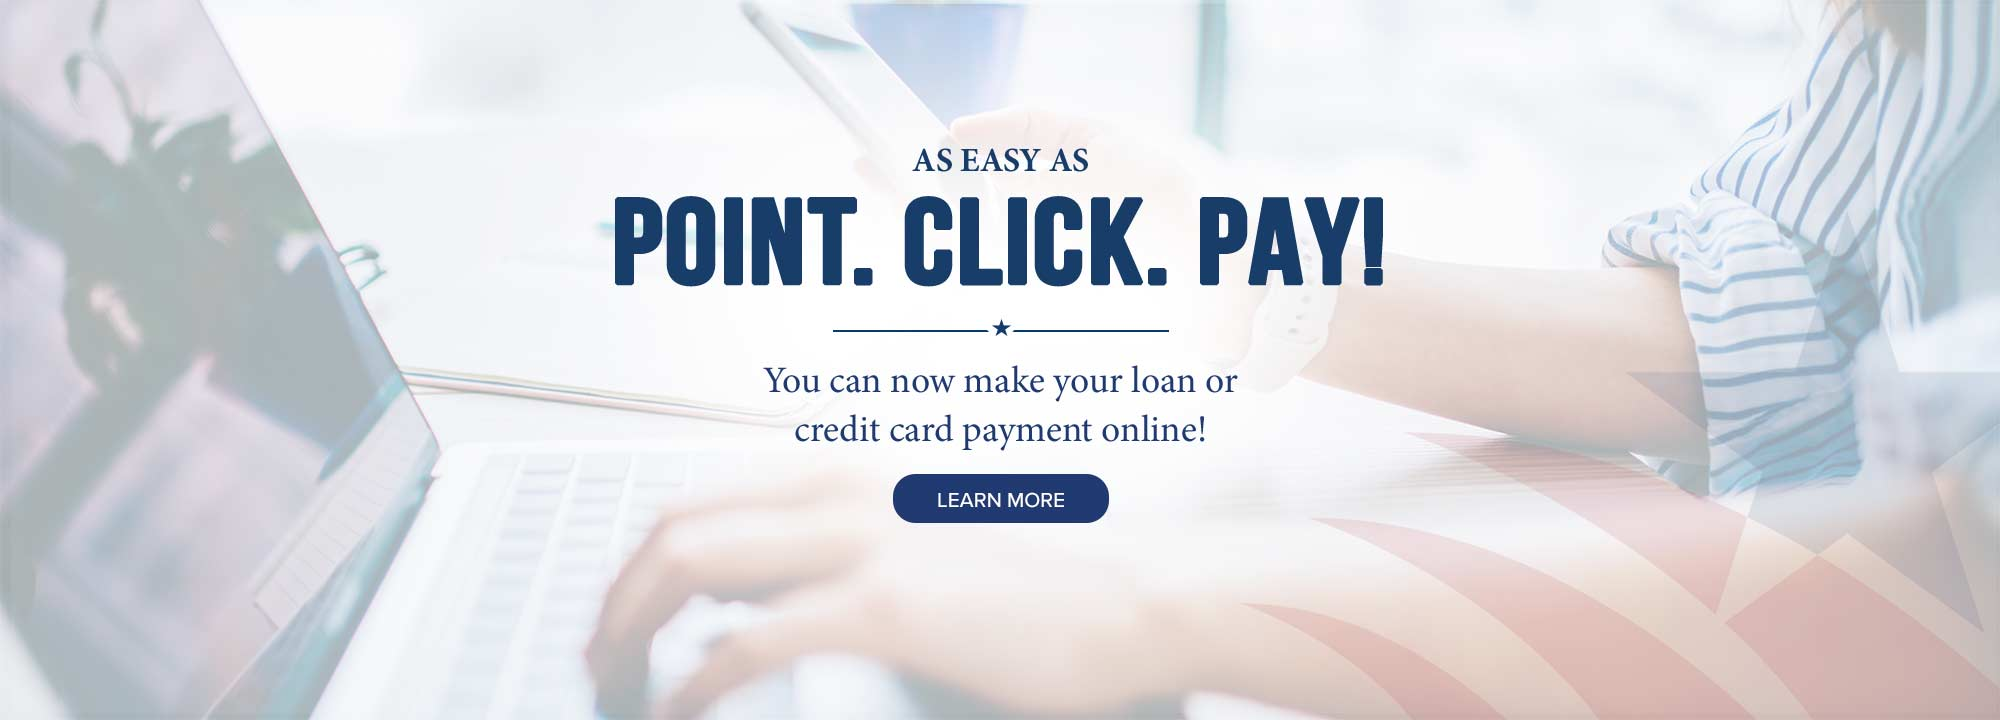 As easy as point, click, pay! You can now make your loan or credit card payment online! Click to learn more.